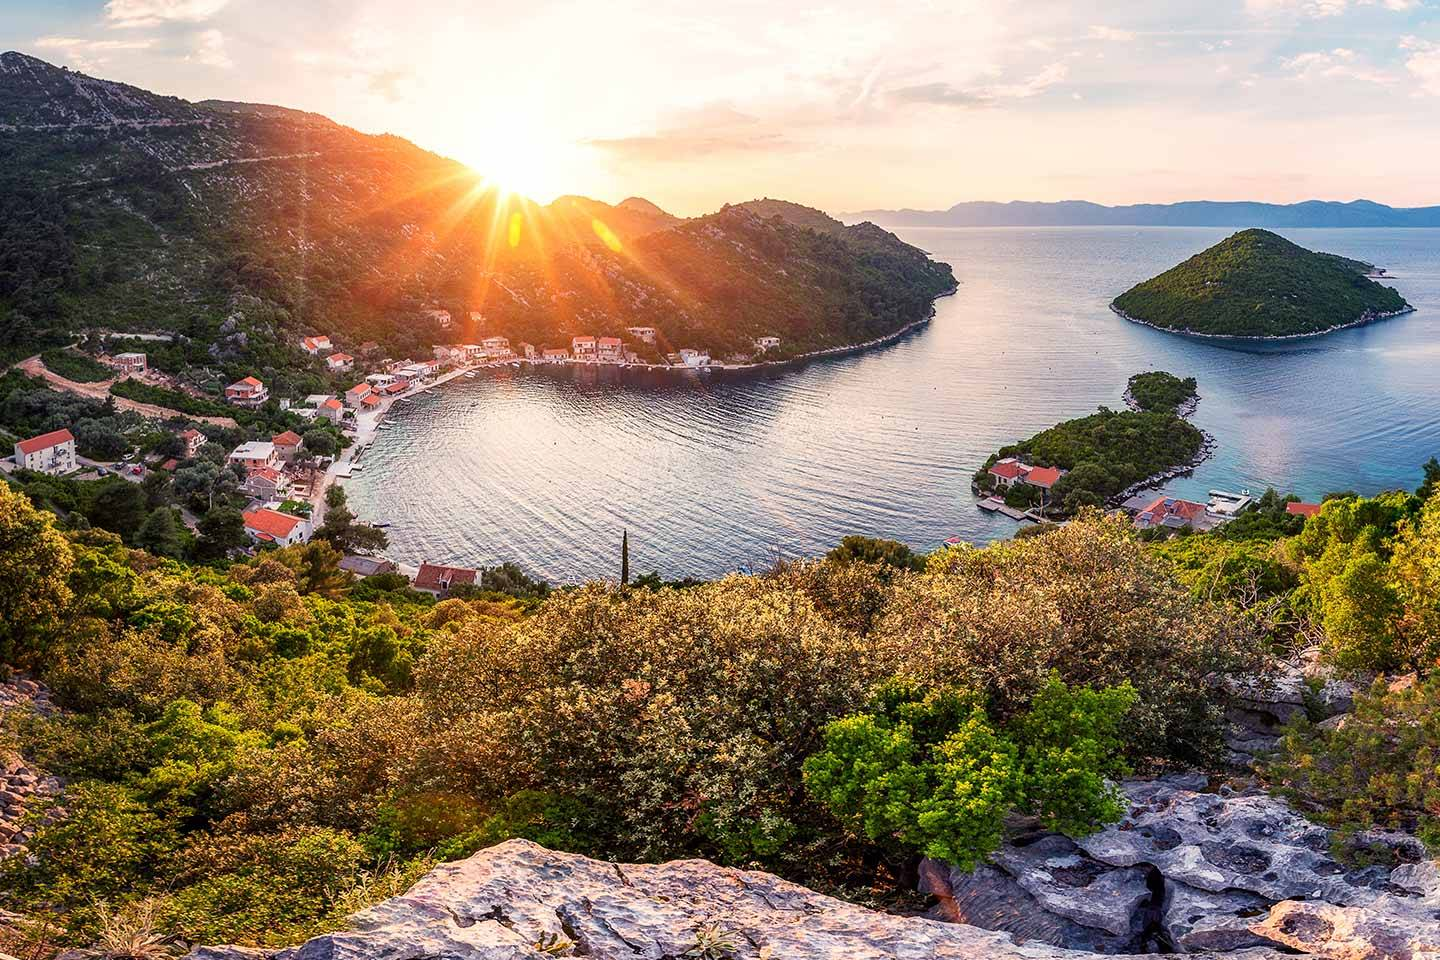 Sun shinning over Mljet